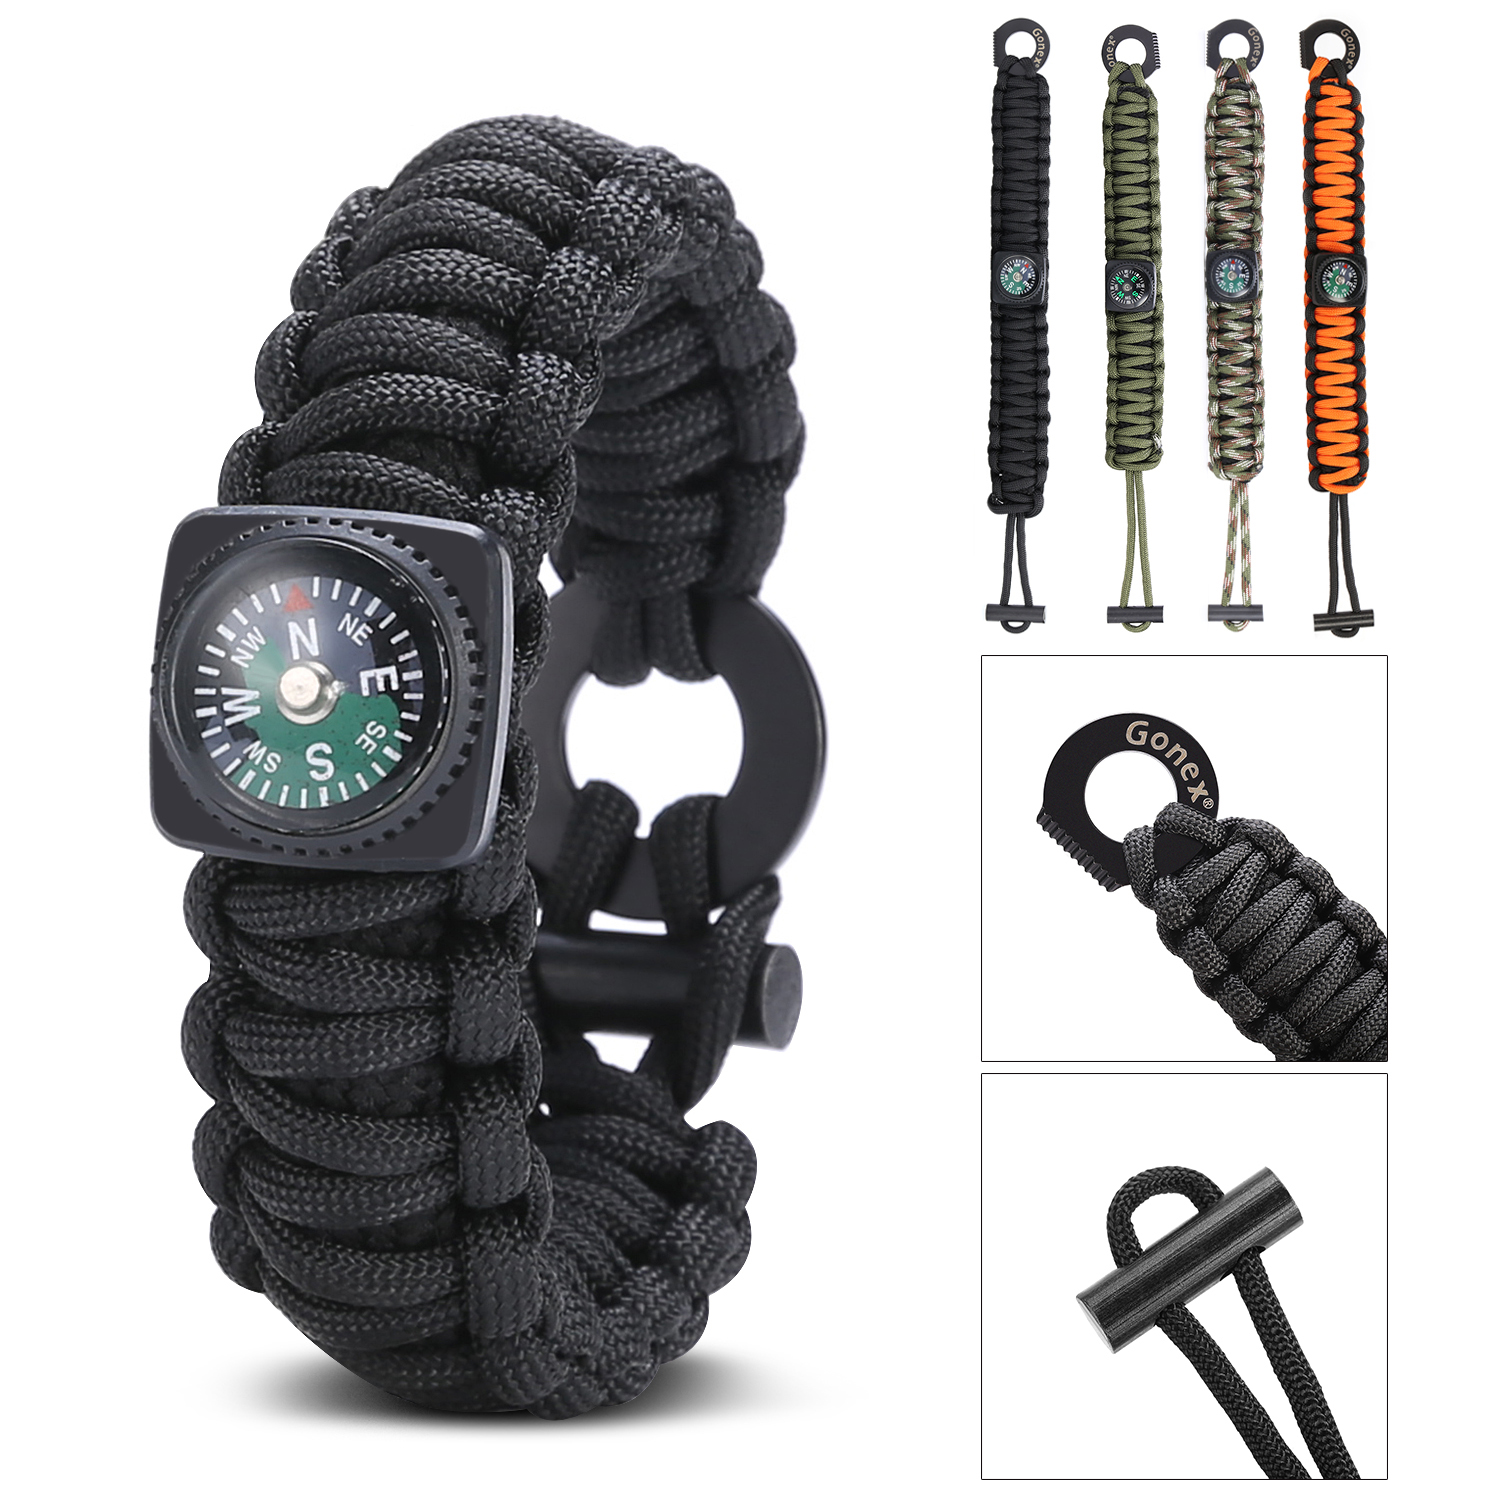 Gonex Paracord 550 Survival Bracelet, Emergency Survival Kit with Compass, Eye Knife, Fire Starter, Fishing Tool for Cam by Gonex